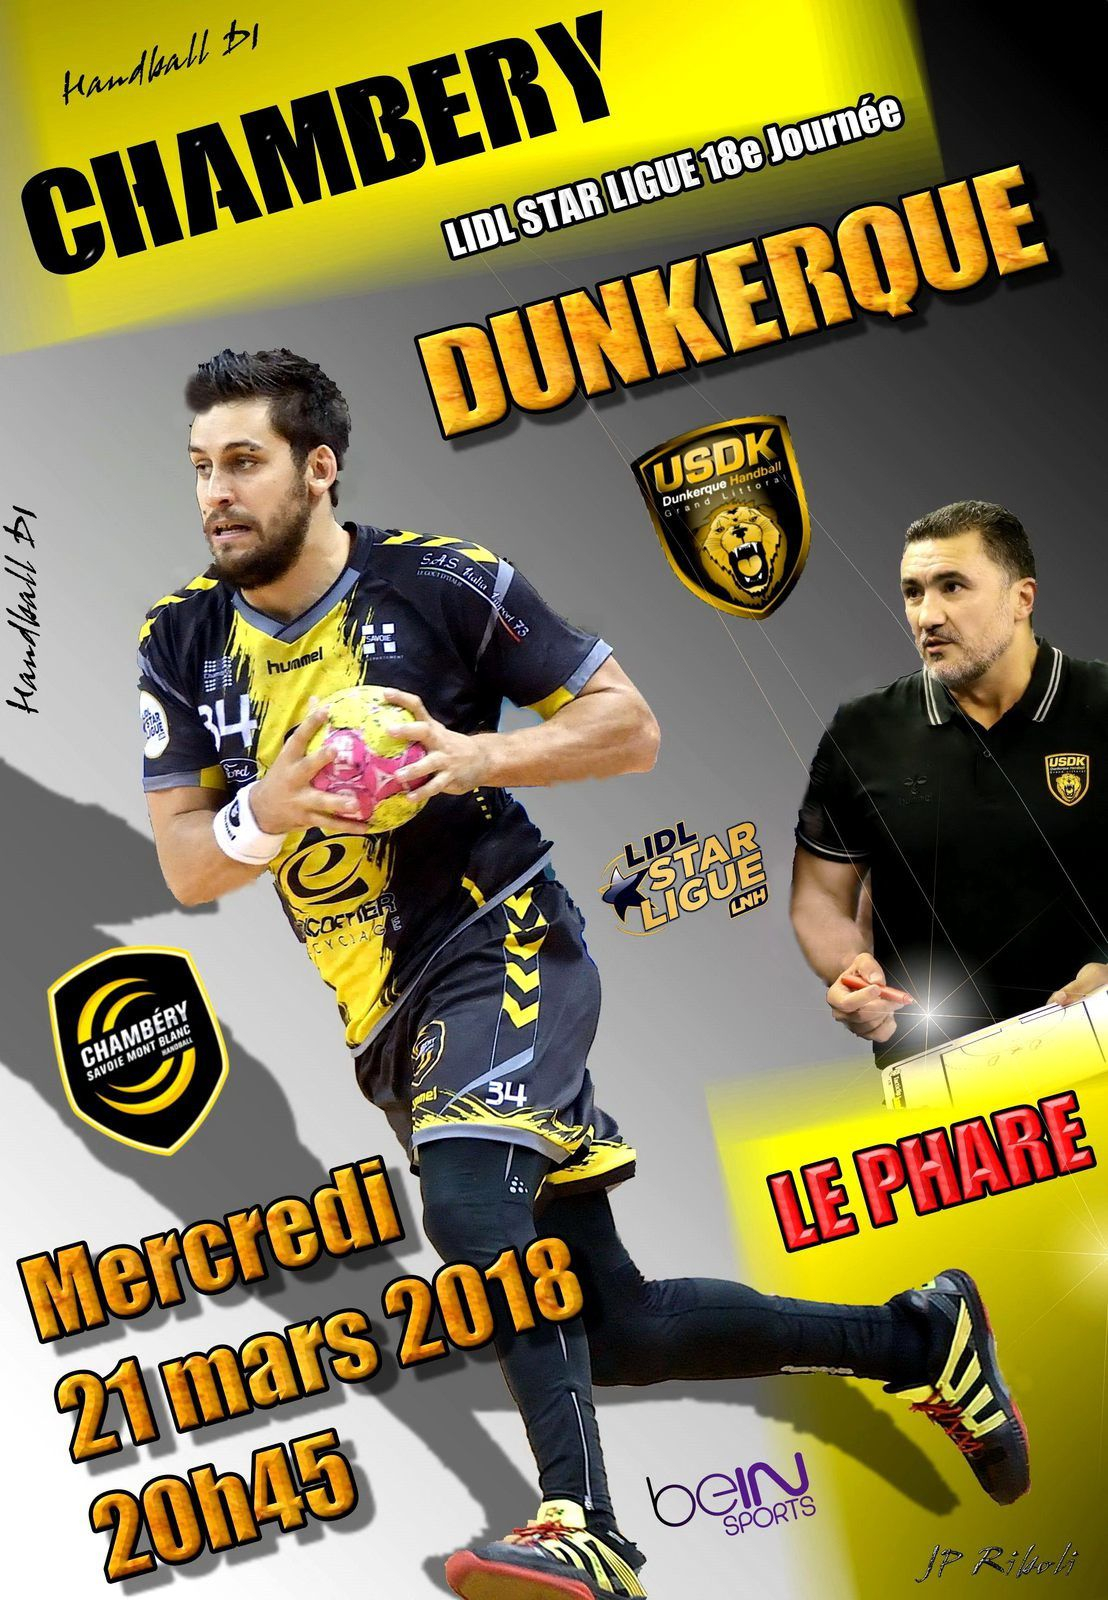 CHAMBERY / DUNKERQUE LUTTONS CONTRE LE FROID VENU DU NORD